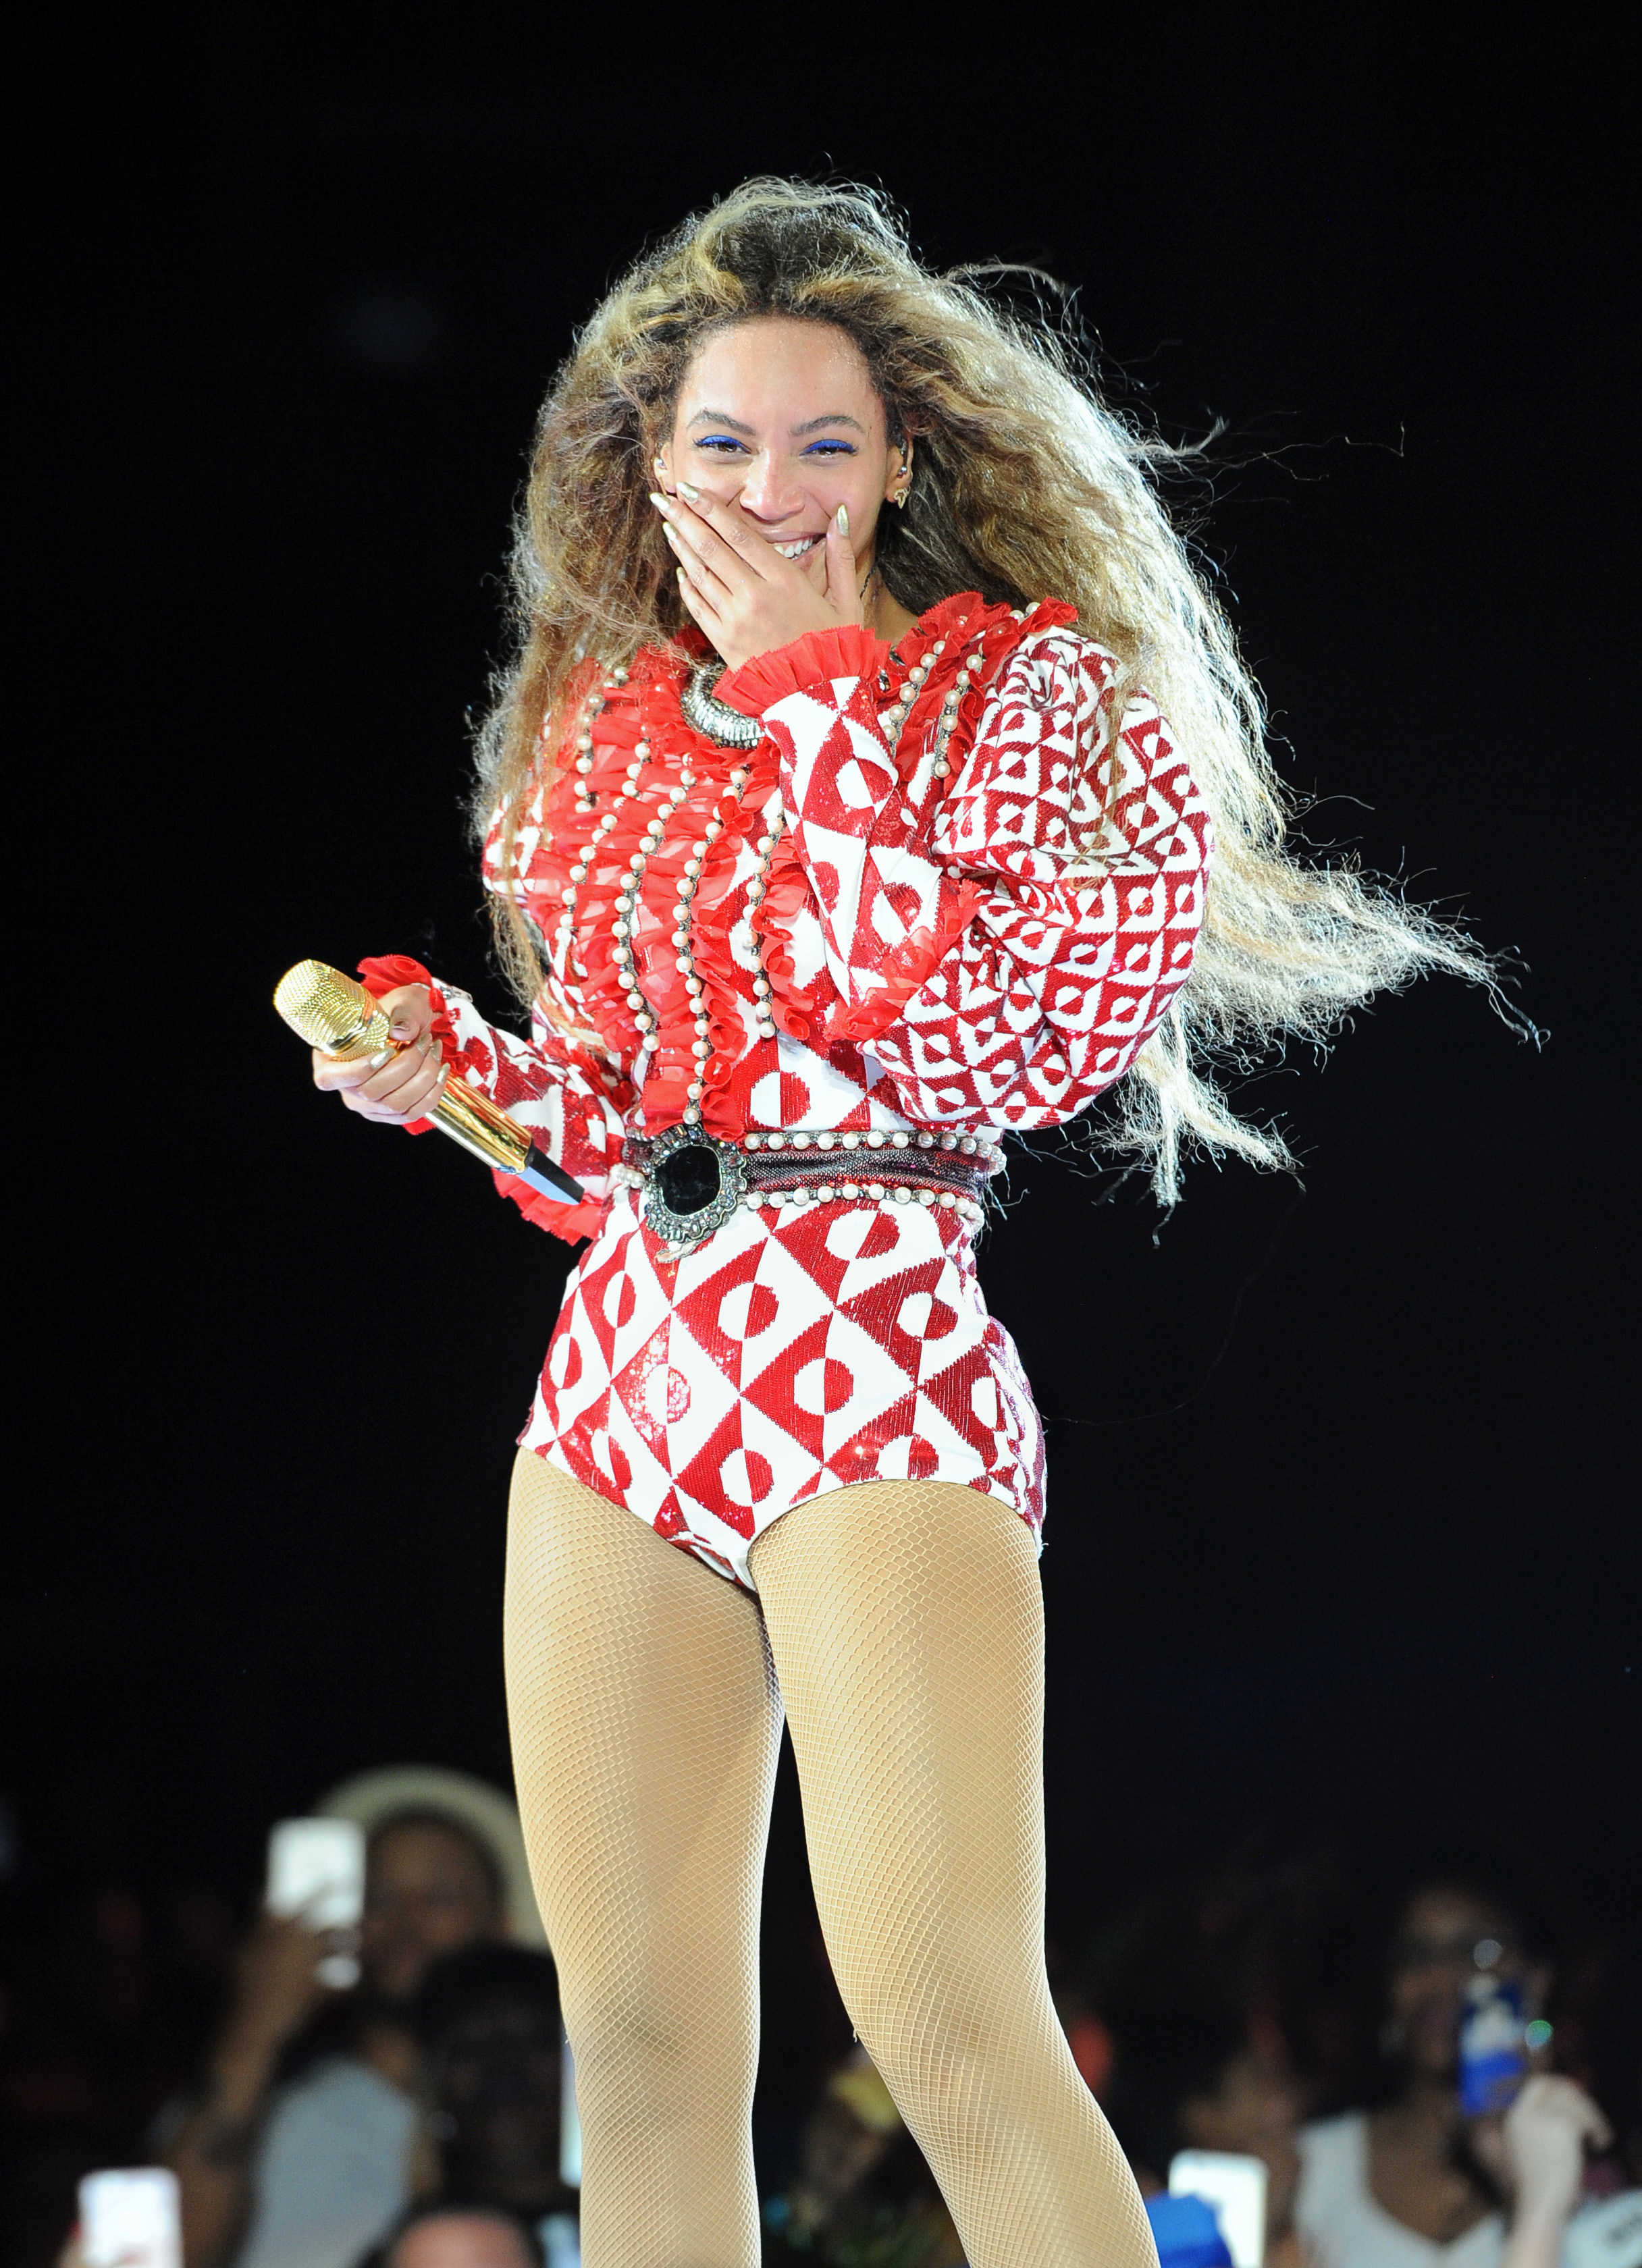 Beyonce helps raise thousands for Flint, Michigan residents